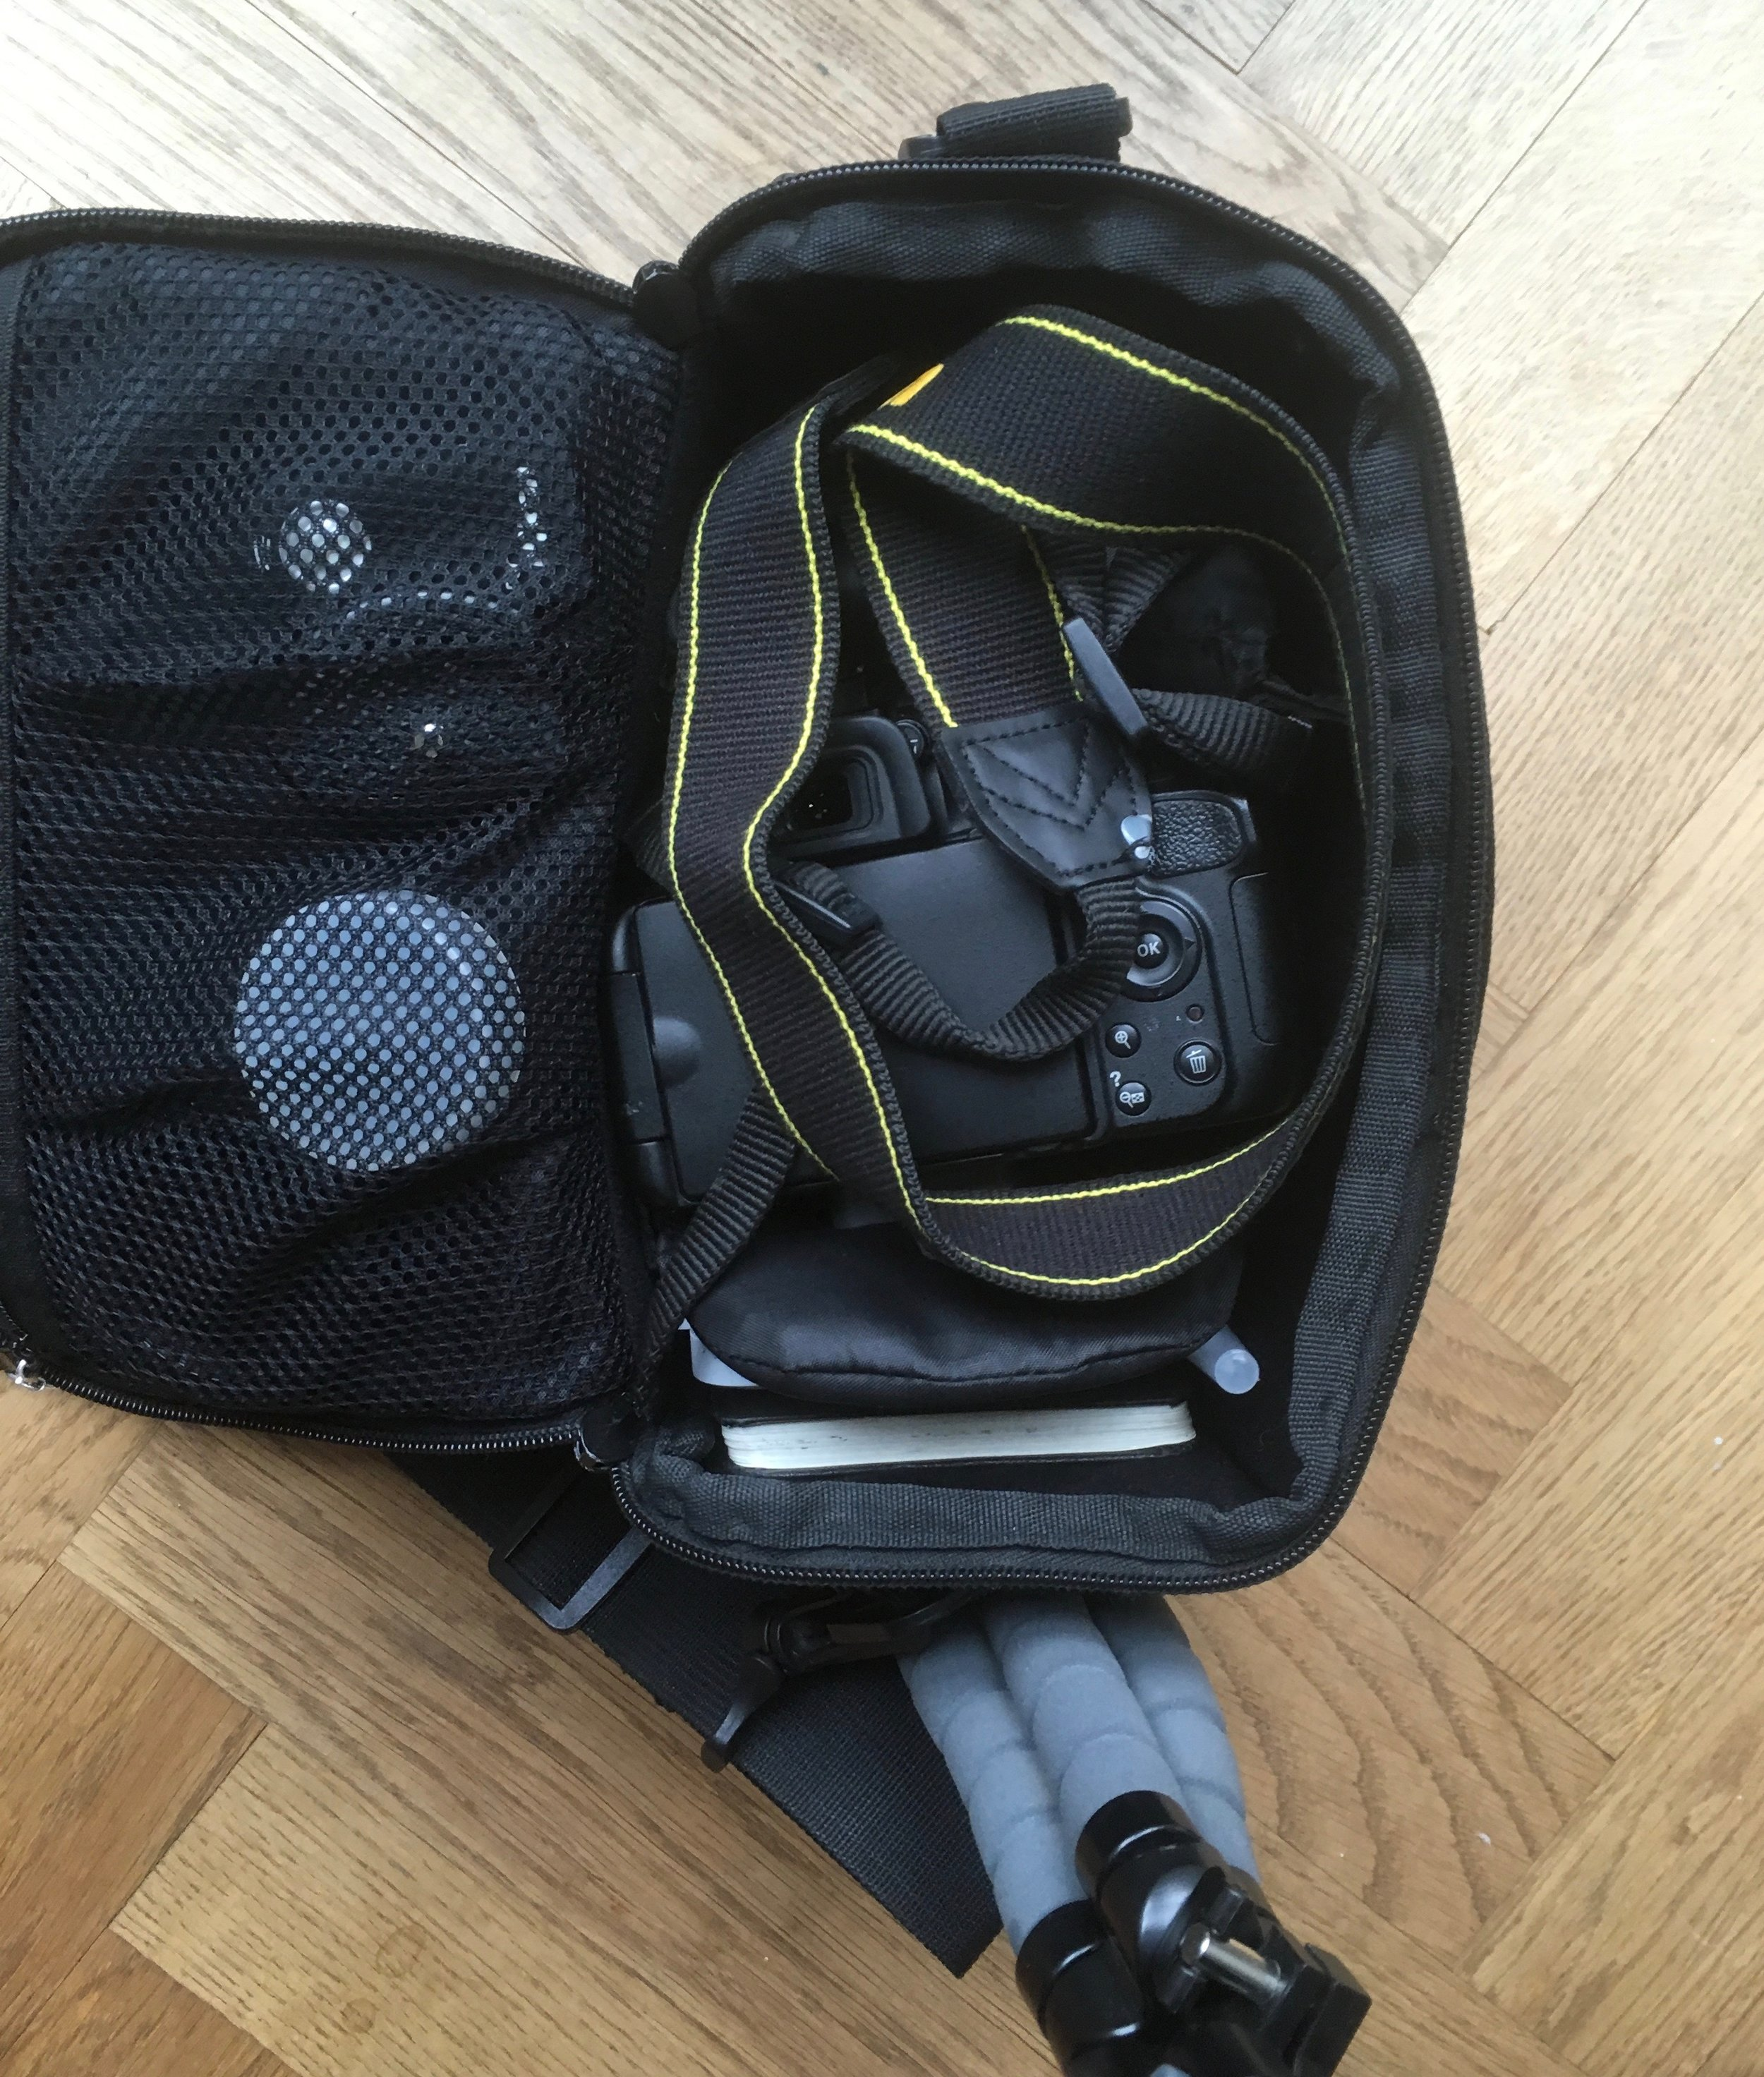 The packed bag